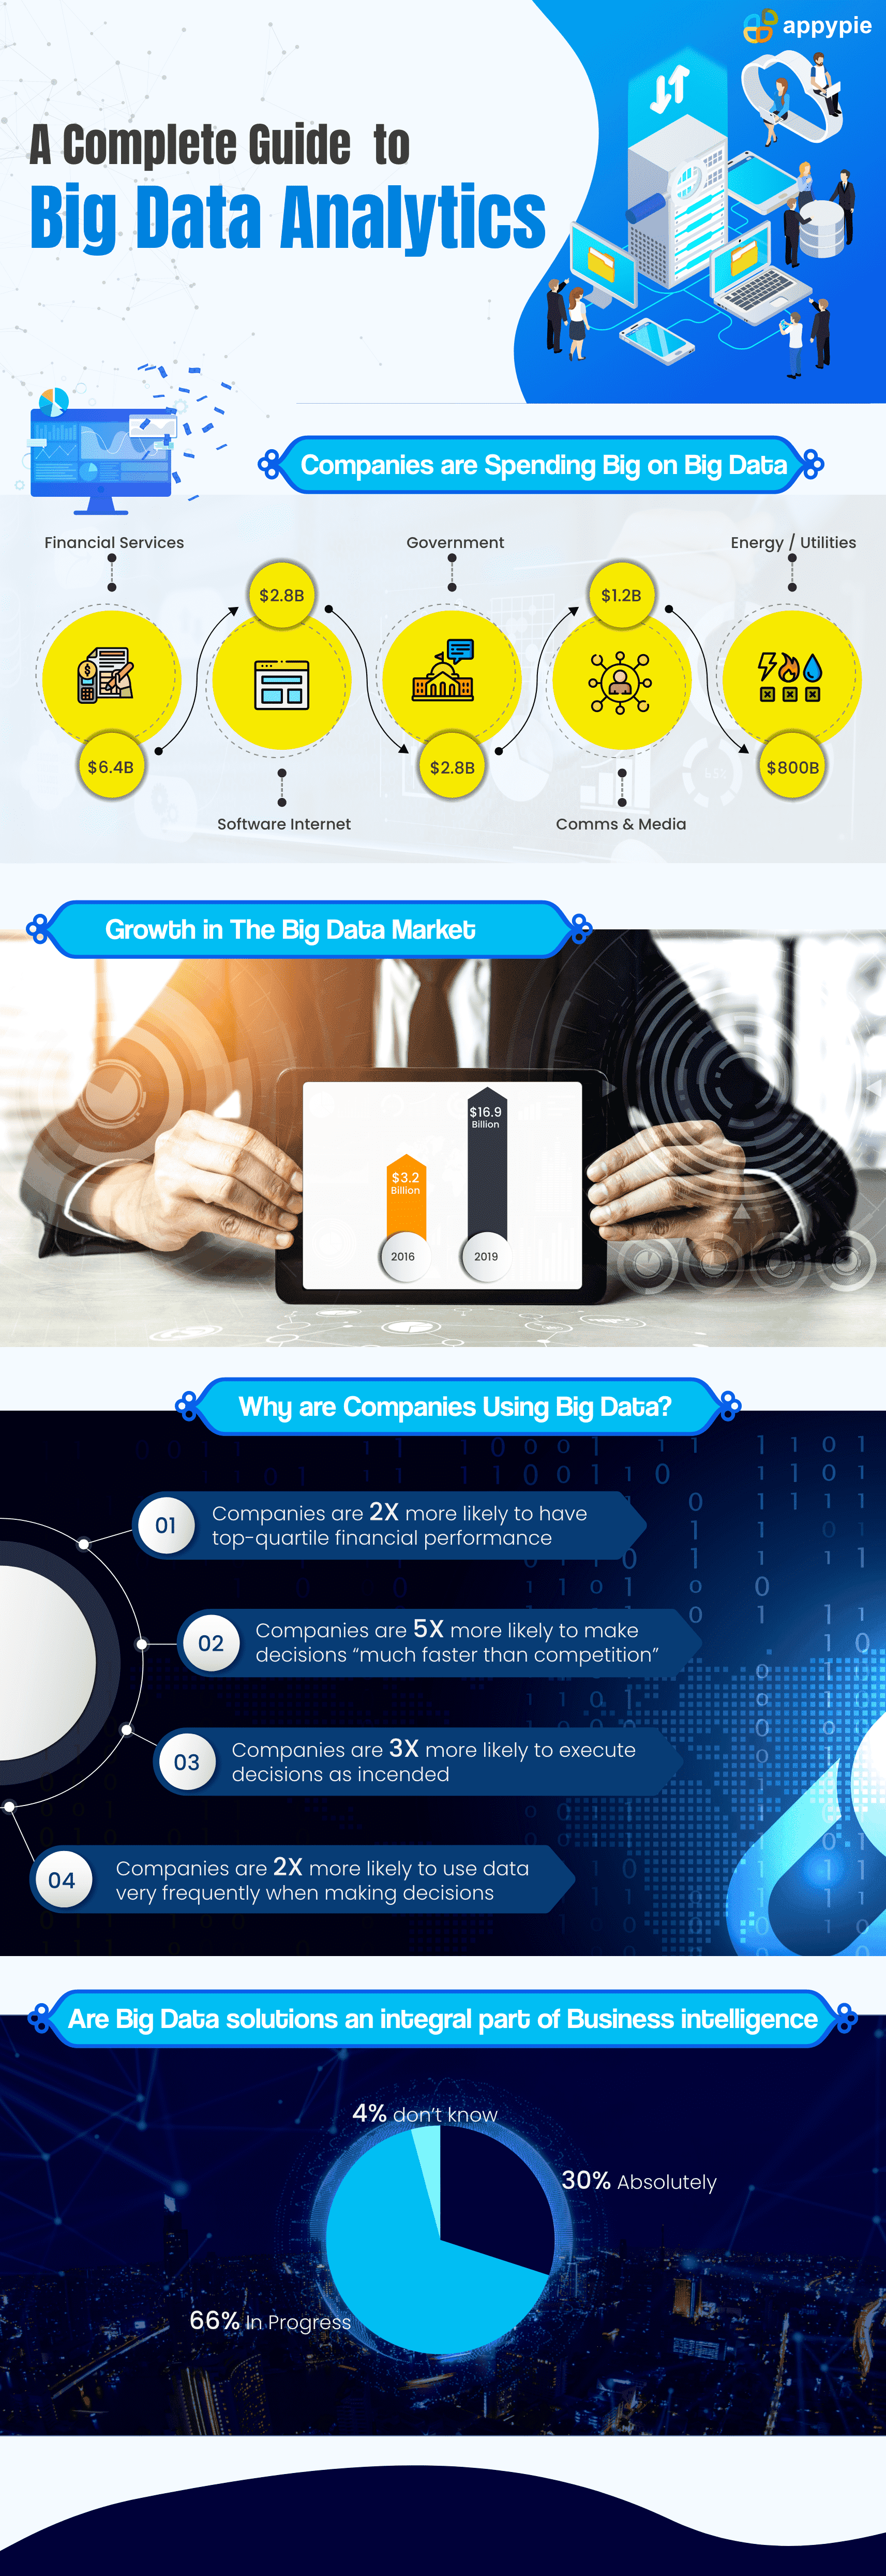 A Complete Guide to Big Data Analytics - Appy Pie